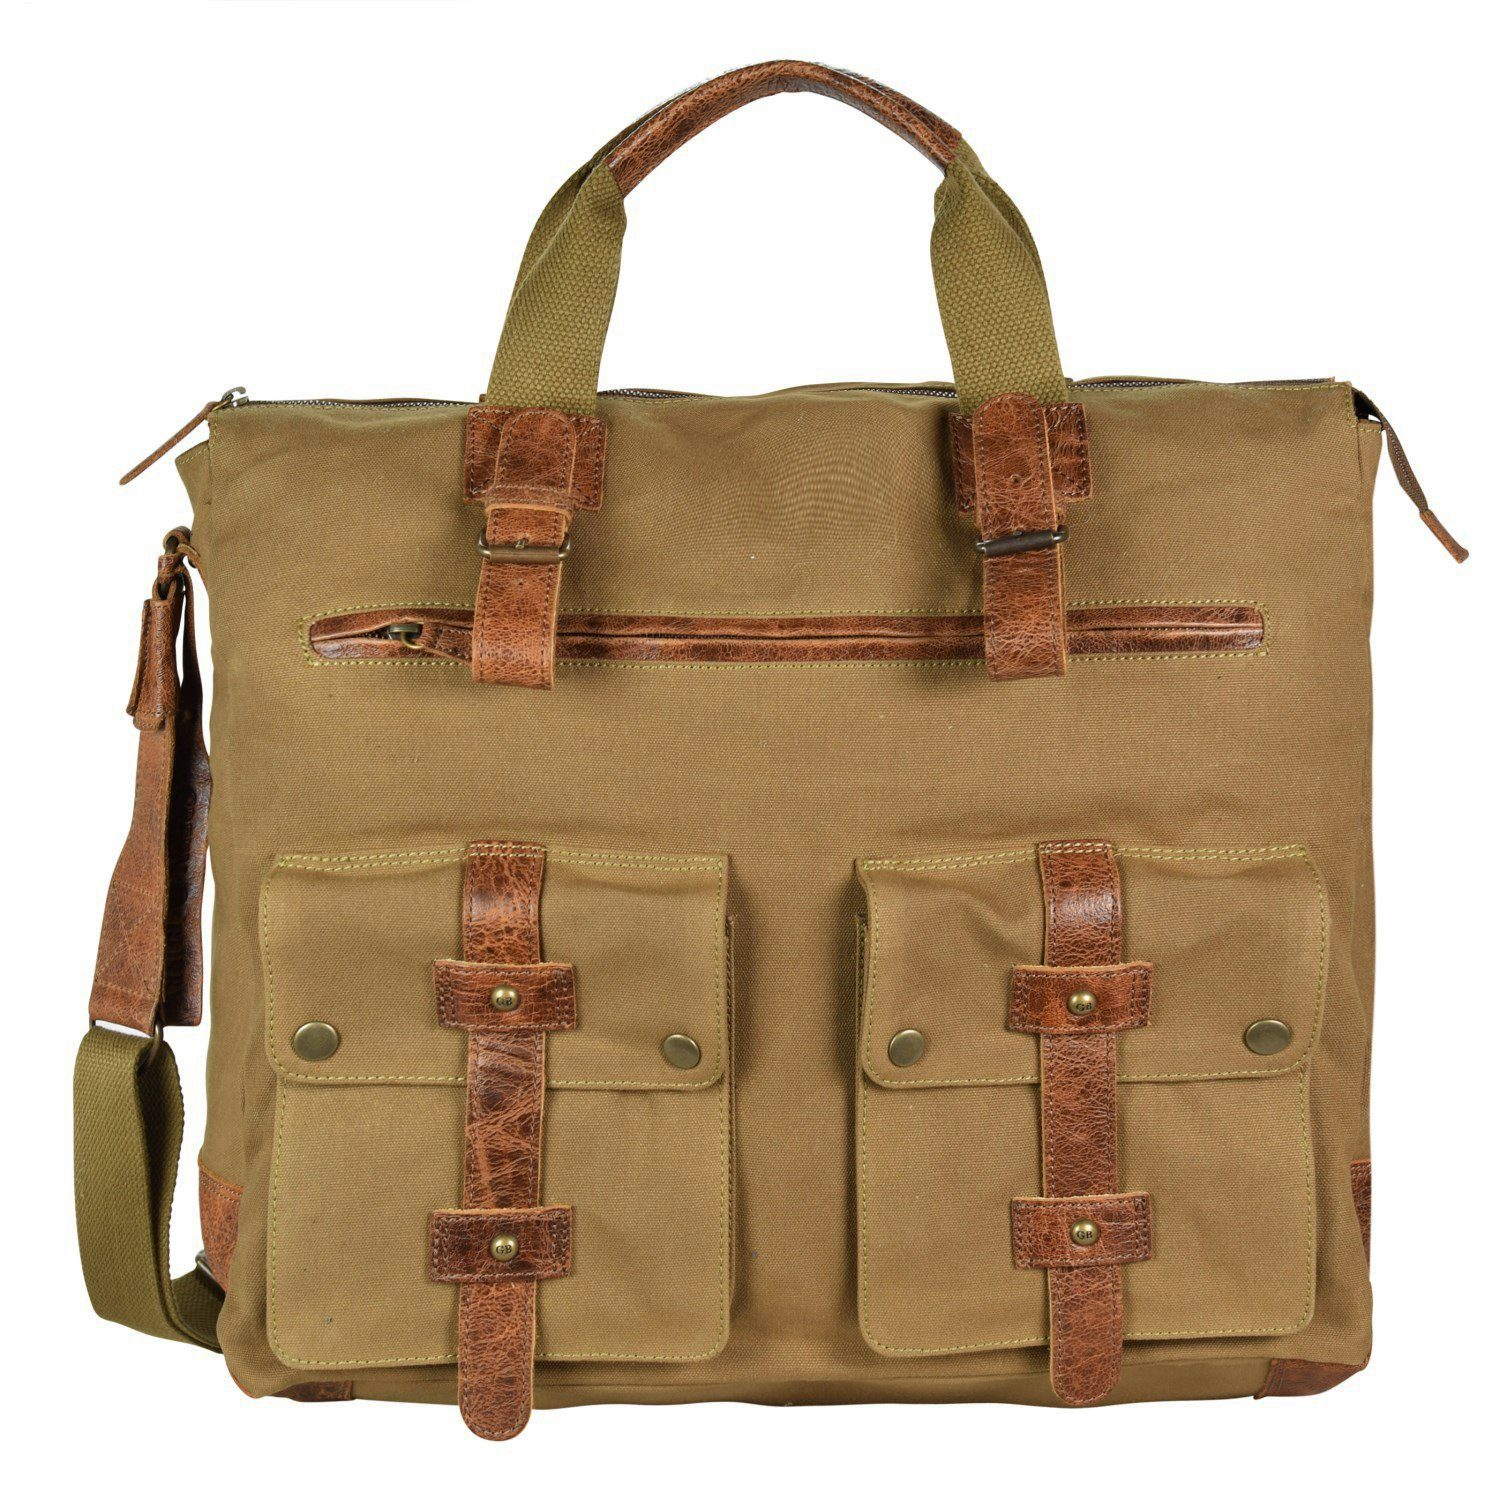 Greenburry White Spirit Fat Boy Handtasche 40 cm Laptopfach